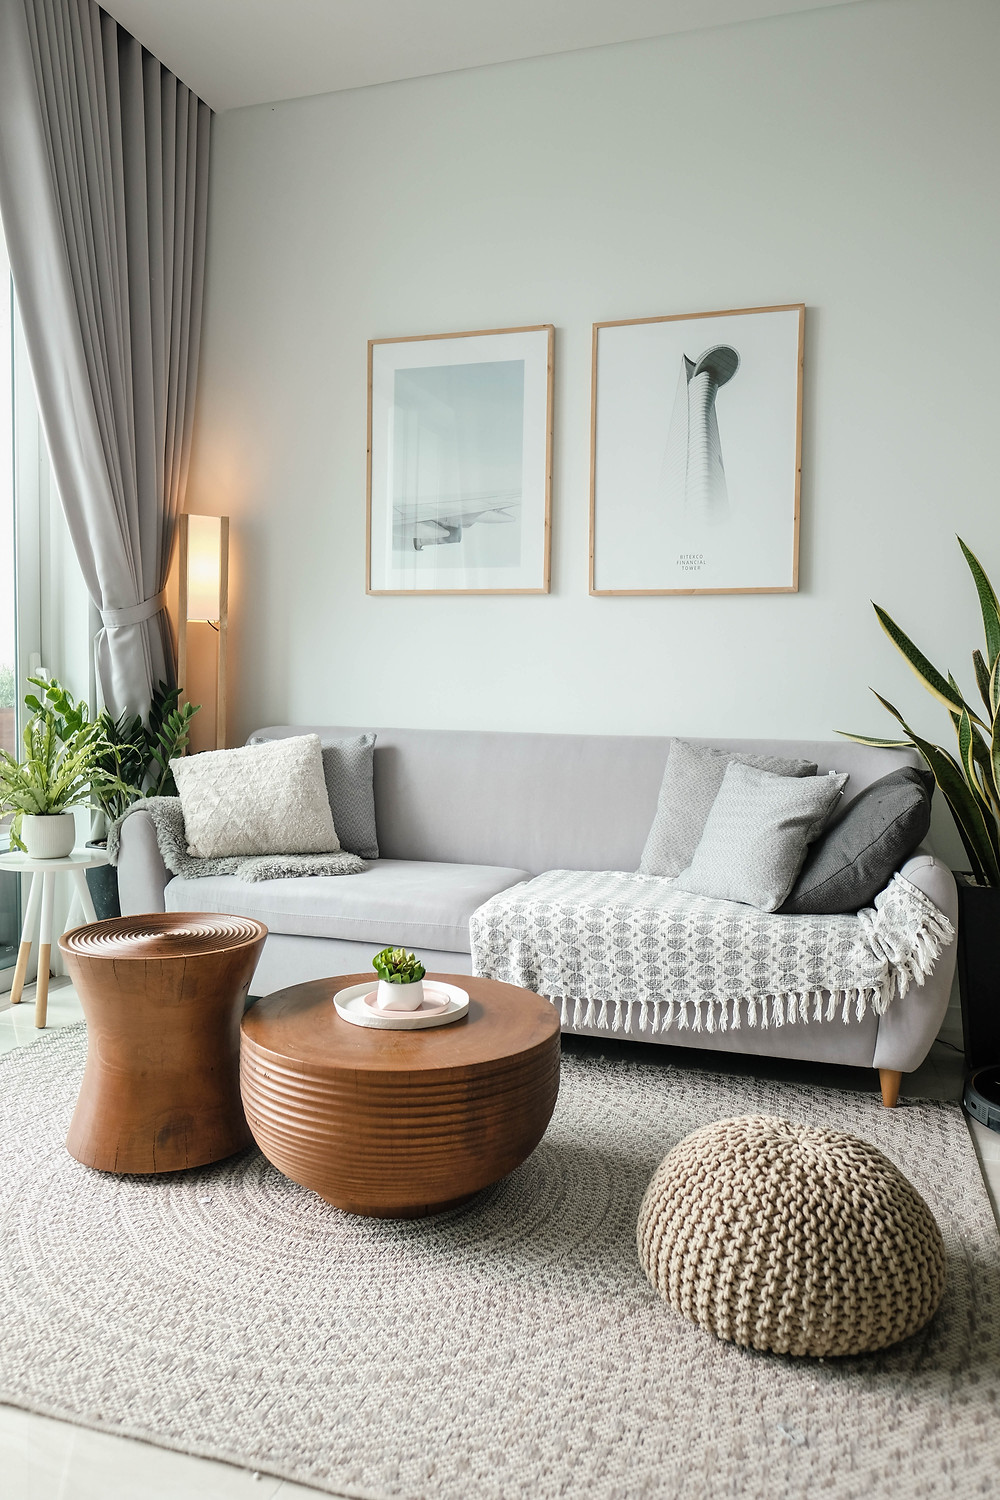 Top Interior Design Tips when viewing your dream home, potential design